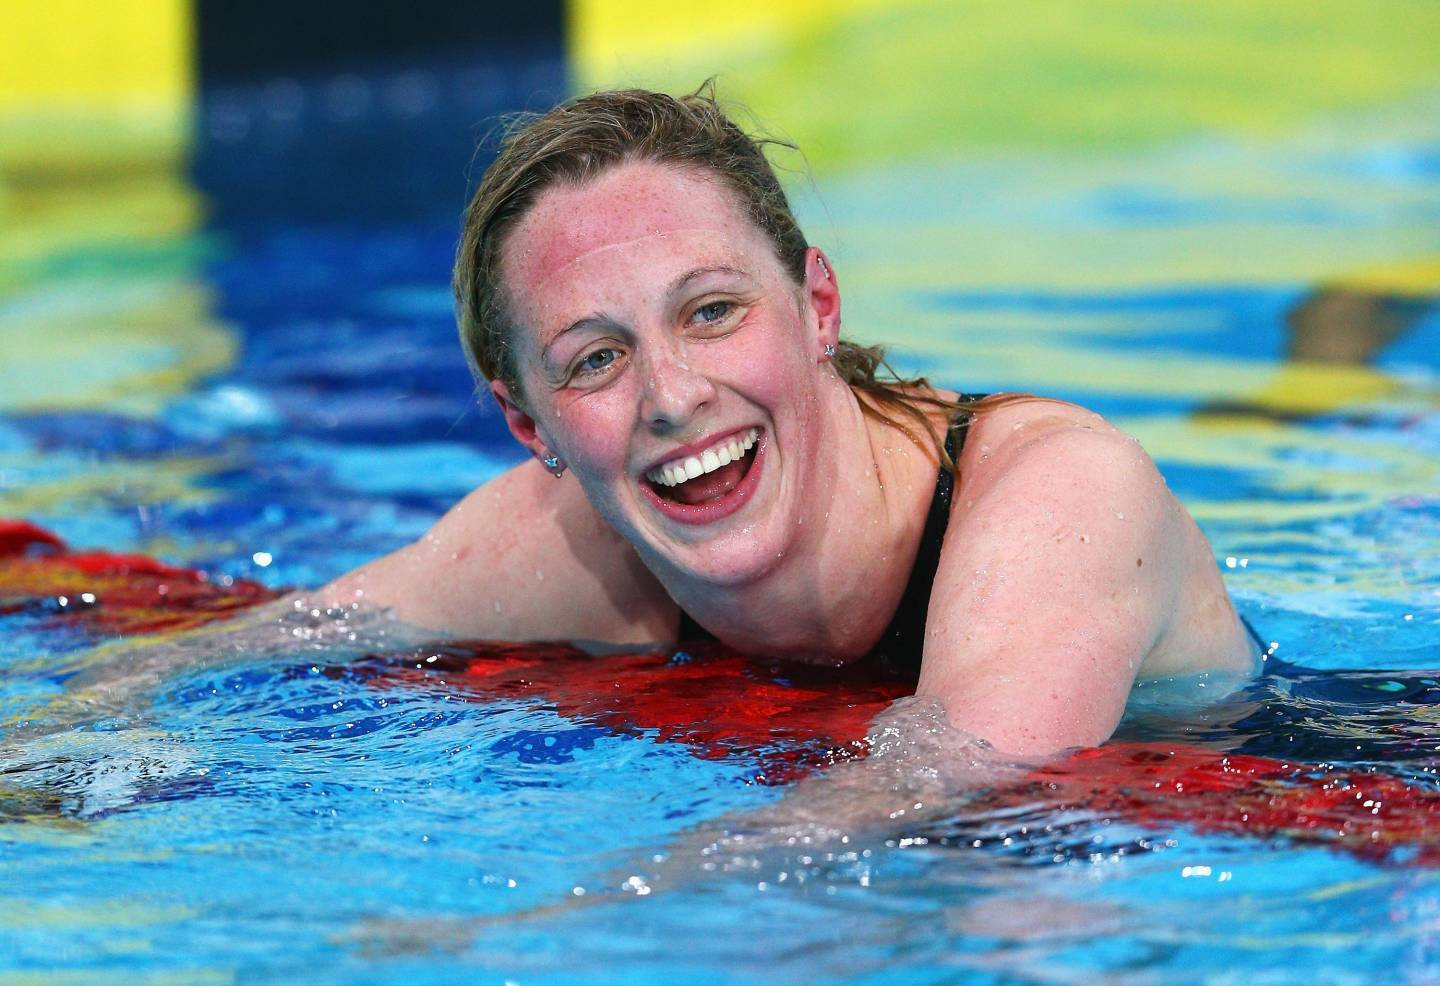 Gold medallist Hannah Miley of Scotland celebrates after winning the Women's 400m Individual Medley Final at Tollcross International Swimming Centre during day one of the Glasgow 2014 Commonwealth Games.